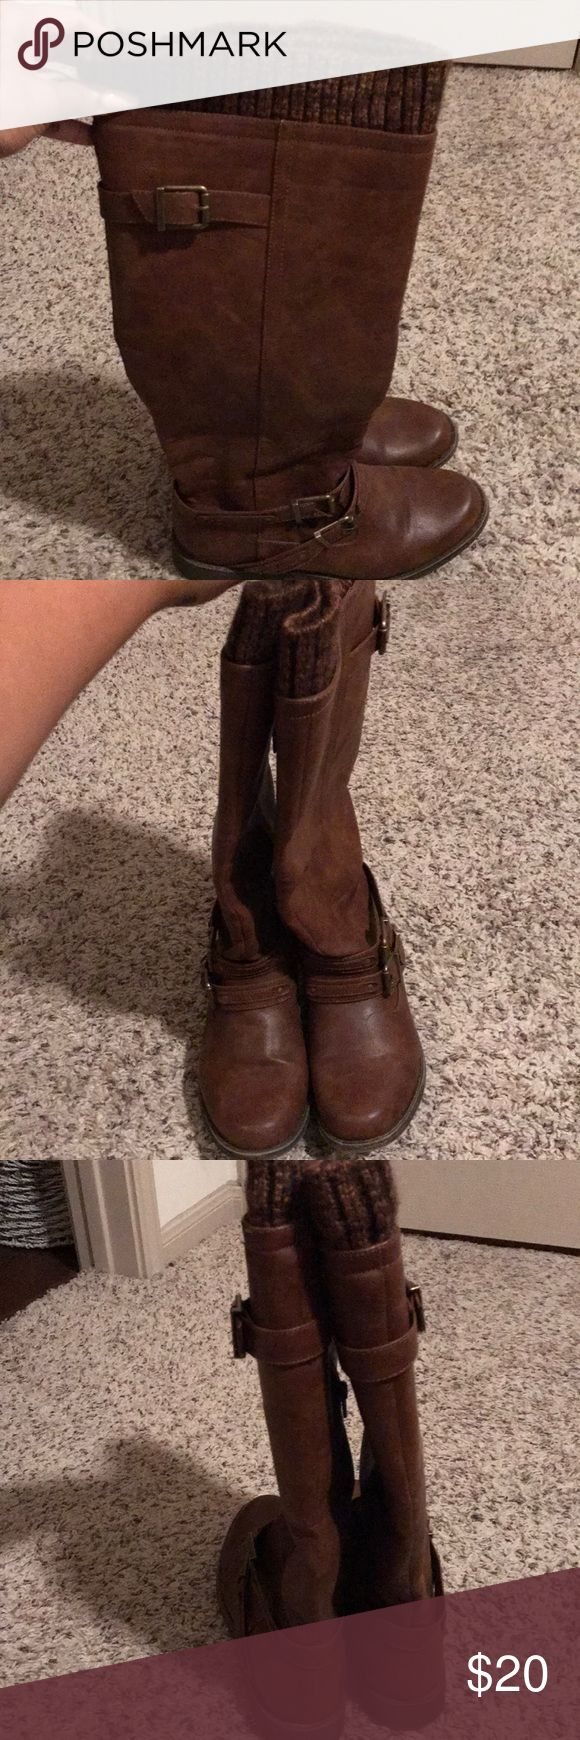 Brown Boots👢👢 These warm brown boots have sweater material to keep your legs warm! Super comfy and perfect for women with big calves (like me)🙋🏽♀️   Make an offer!! Shoes